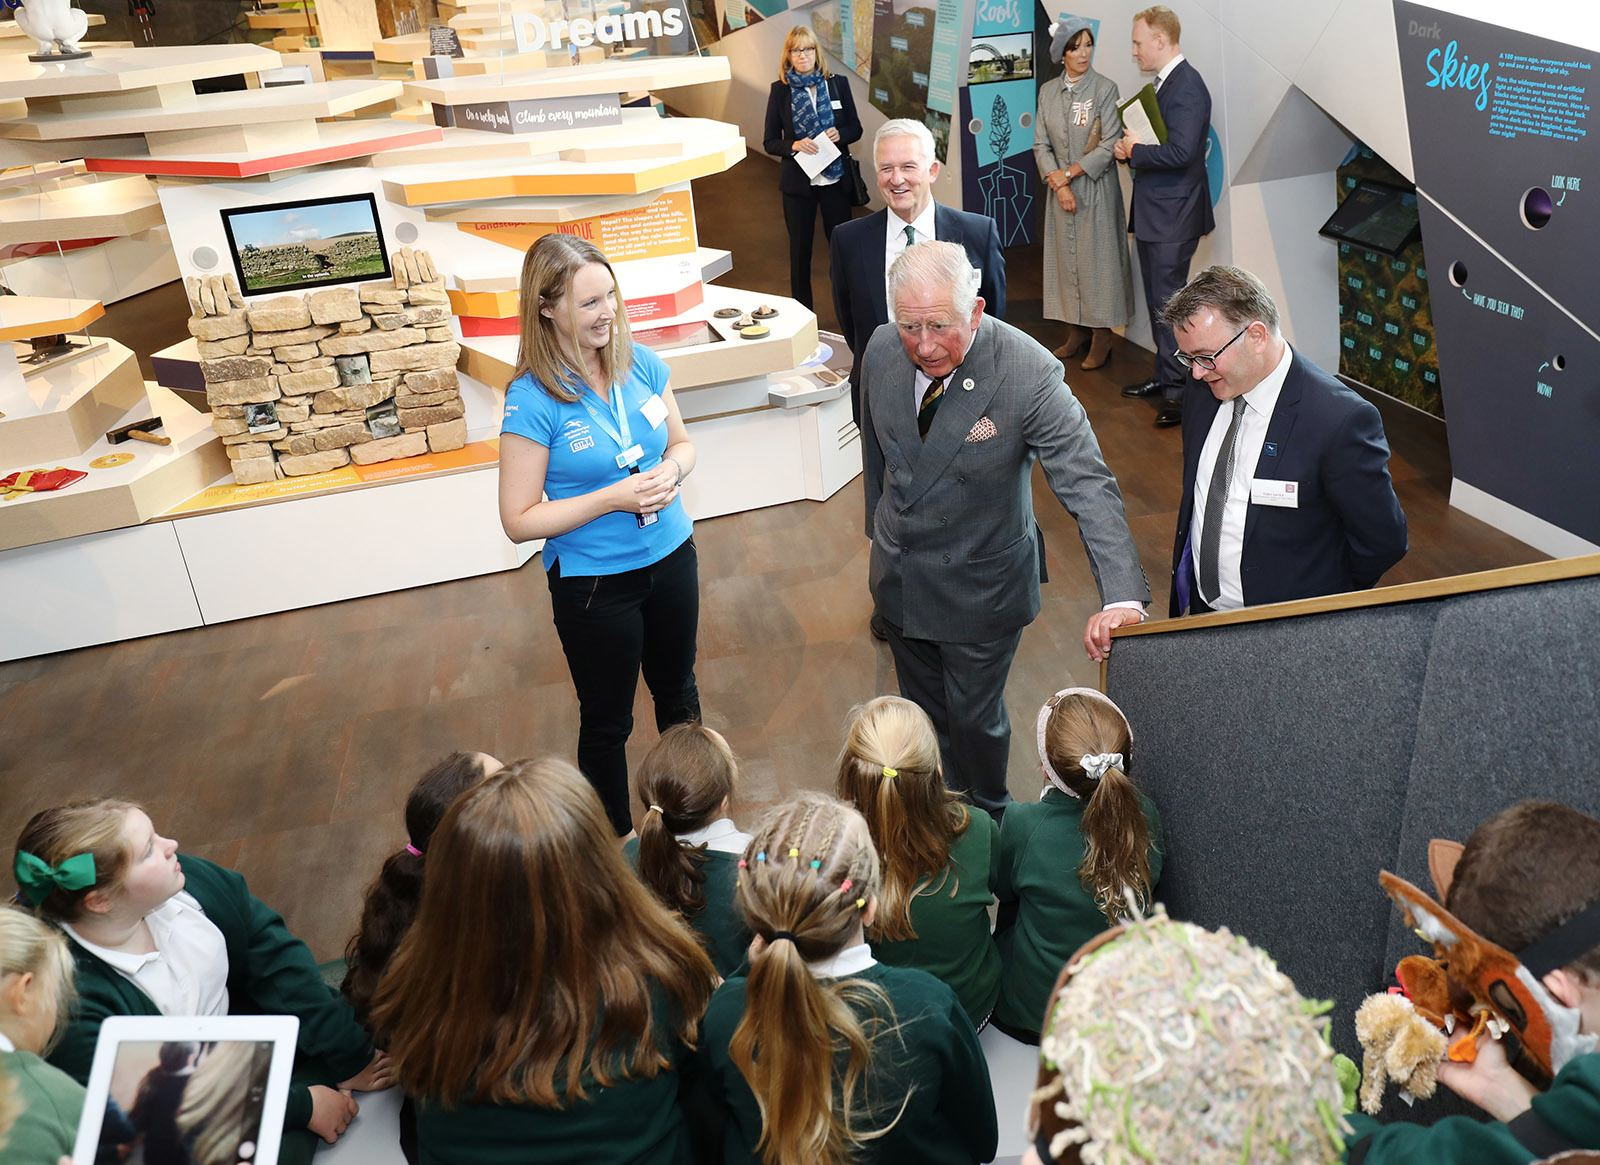 Rachel Baron, HRH Prince of Wales and children at Sill